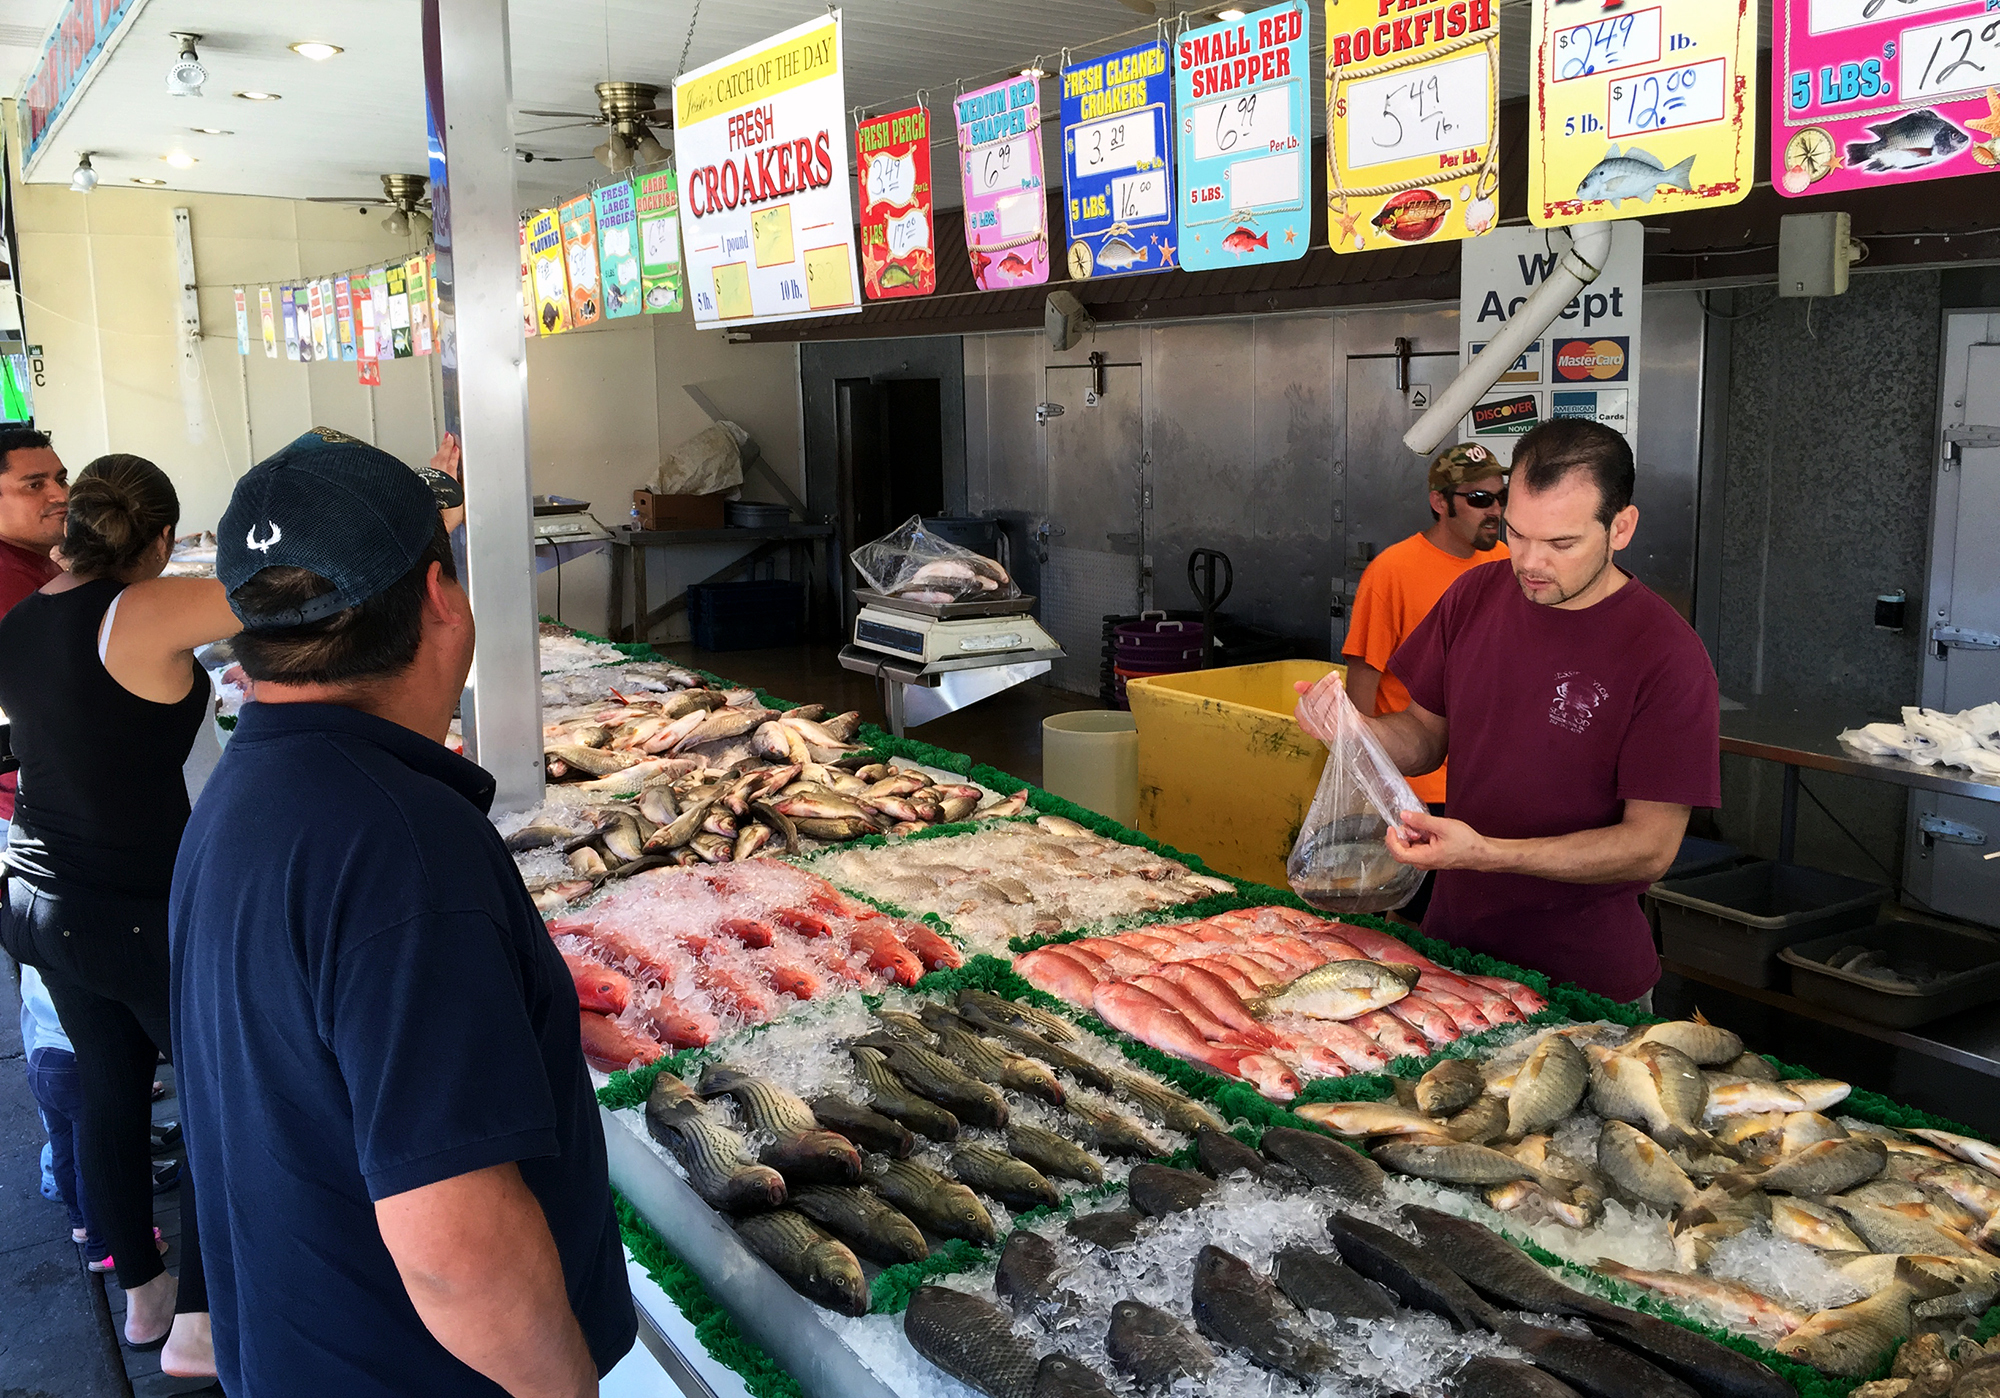 Customers shop for salmon at a fish market in southwest Washington, D.C. Most Americans don't eat the recommended amount of fish each week.